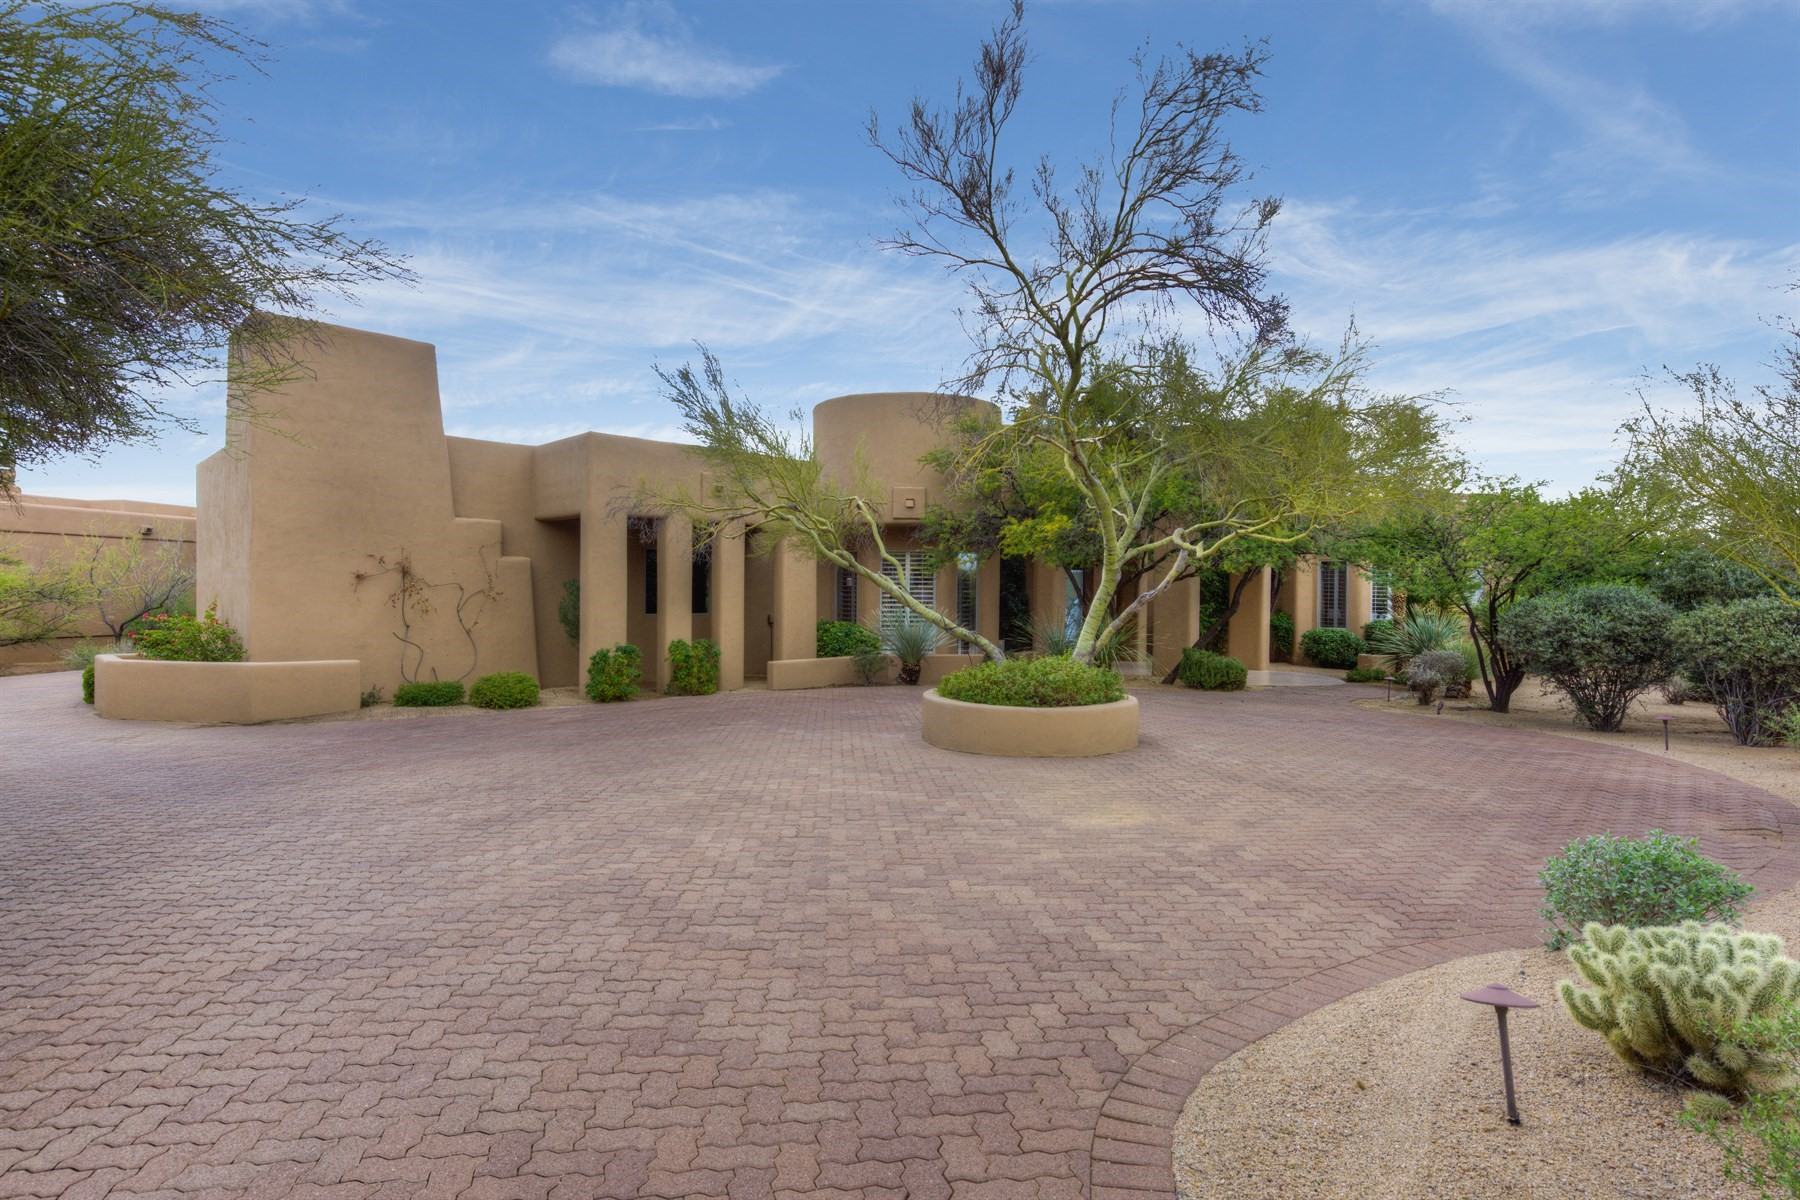 Single Family Home for Sale at Beautiful Soft Contemporary home is located in the community of Desert Highland 10040 E HAPPY VALLEY RD 330 Scottsdale, Arizona, 85255 United States